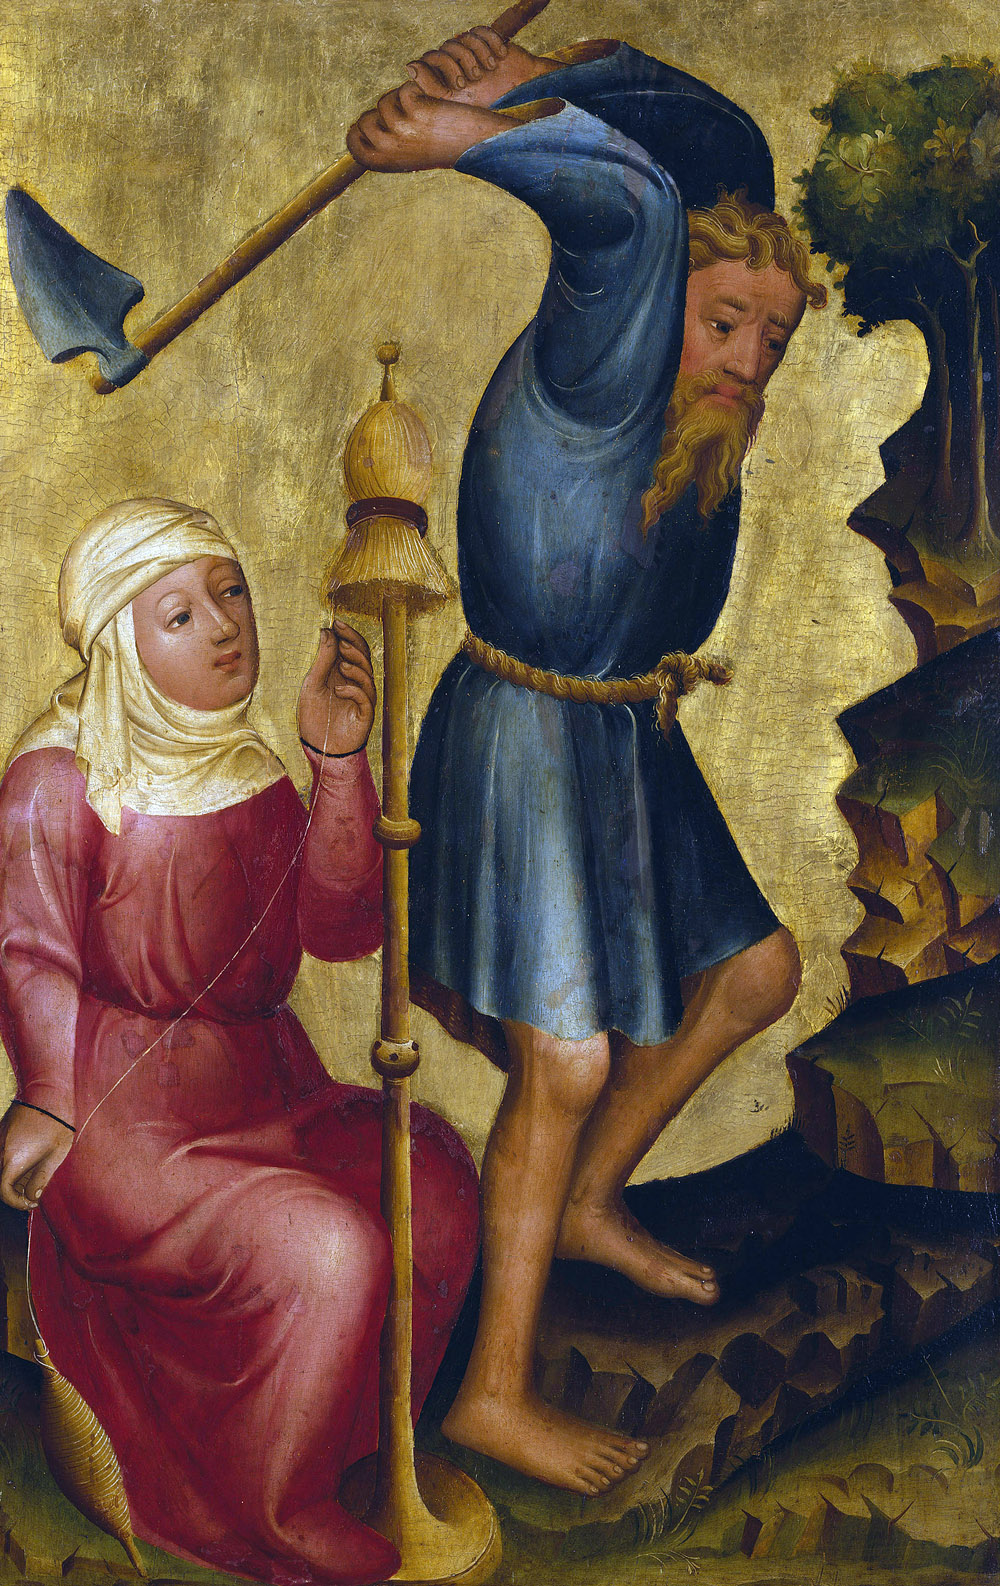 The labors of Adam and Eve, from the Grabow Altarpiece, by Master Bertram of Minden, c. 1381. Kunsthalle Hamburg, Germany.